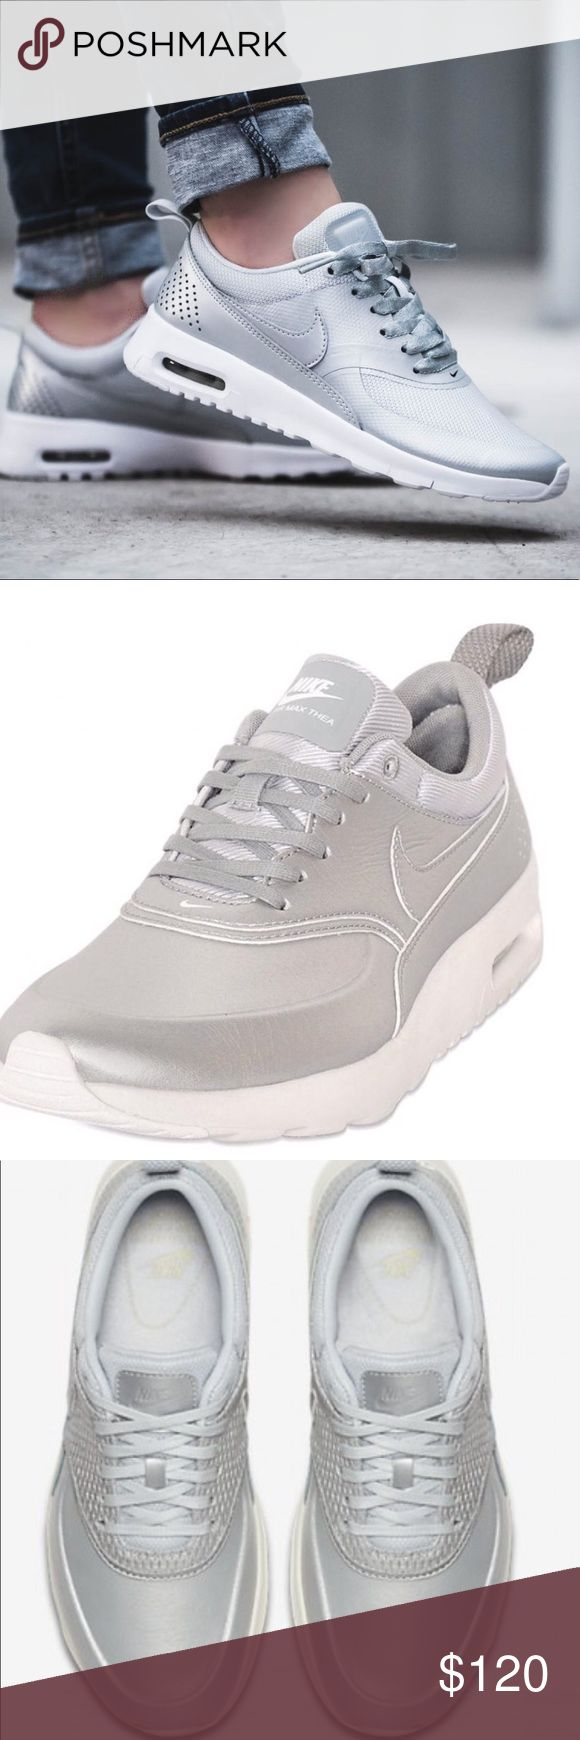 NIKE AIR MAX THEA Premium Metallic Platinum Brand: Nike Gender: Unisex Sport: Lifestyle Shoes Color: Metallic Platinum/Sail/Pure Platinum Sku: 904500-004  Size: 8.5 New with tag, no box Trending item  The Nike Air Max Thea Premium Leather Women's Shoe modernises a breakthrough running profile for everyday comfort with a sleek, minimal look and the classic cushioning that made the original famous. Nike Shoes Athletic Shoes